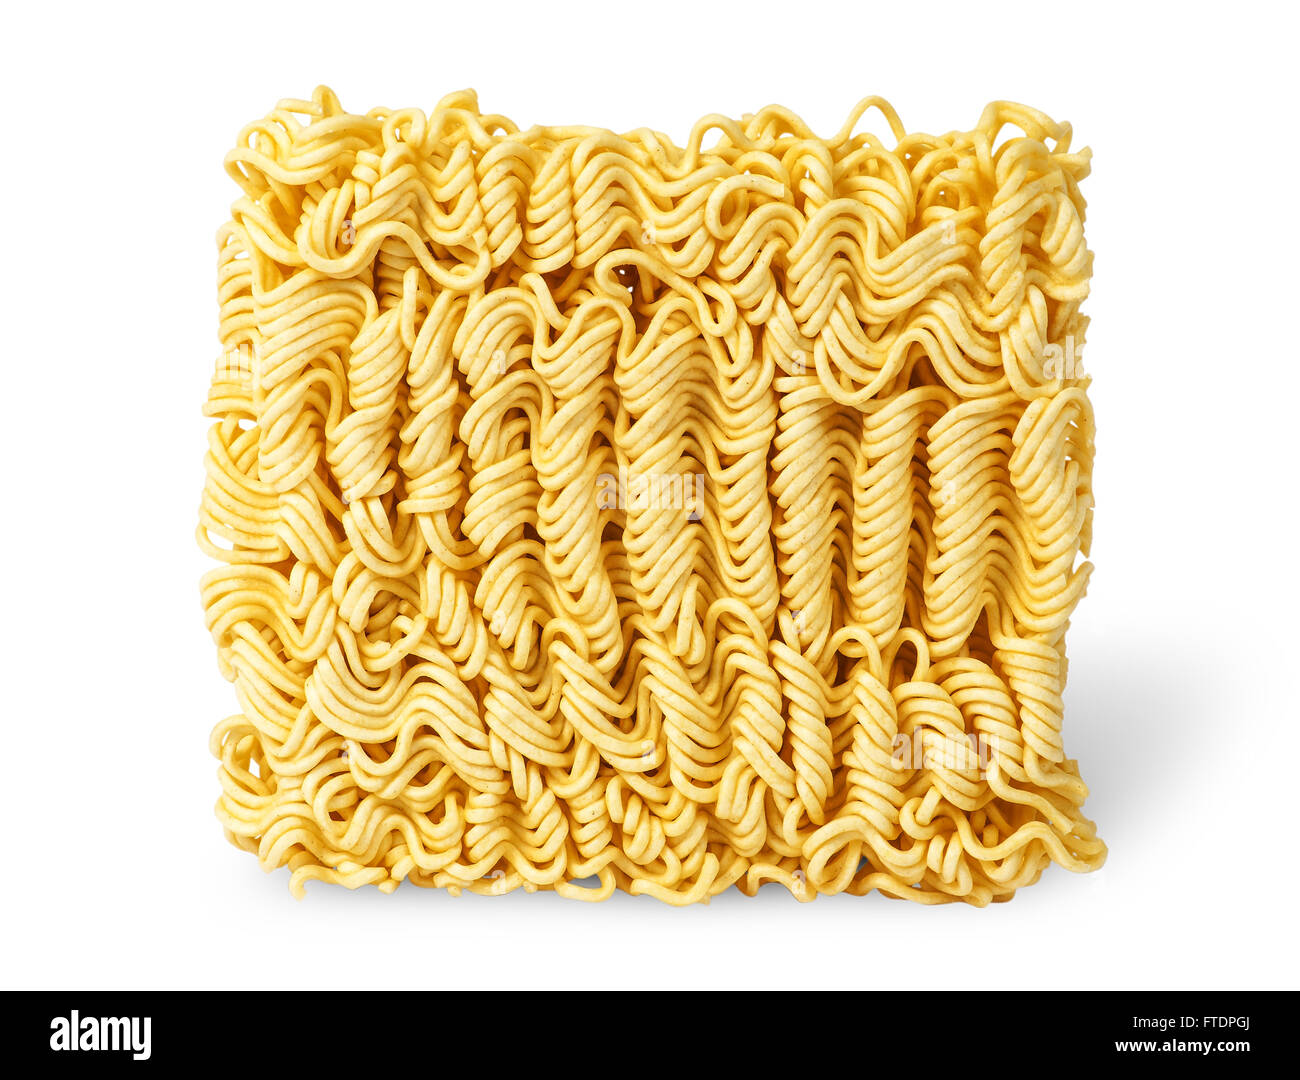 Noodles of fast preparation vertically isolated on white background - Stock Image